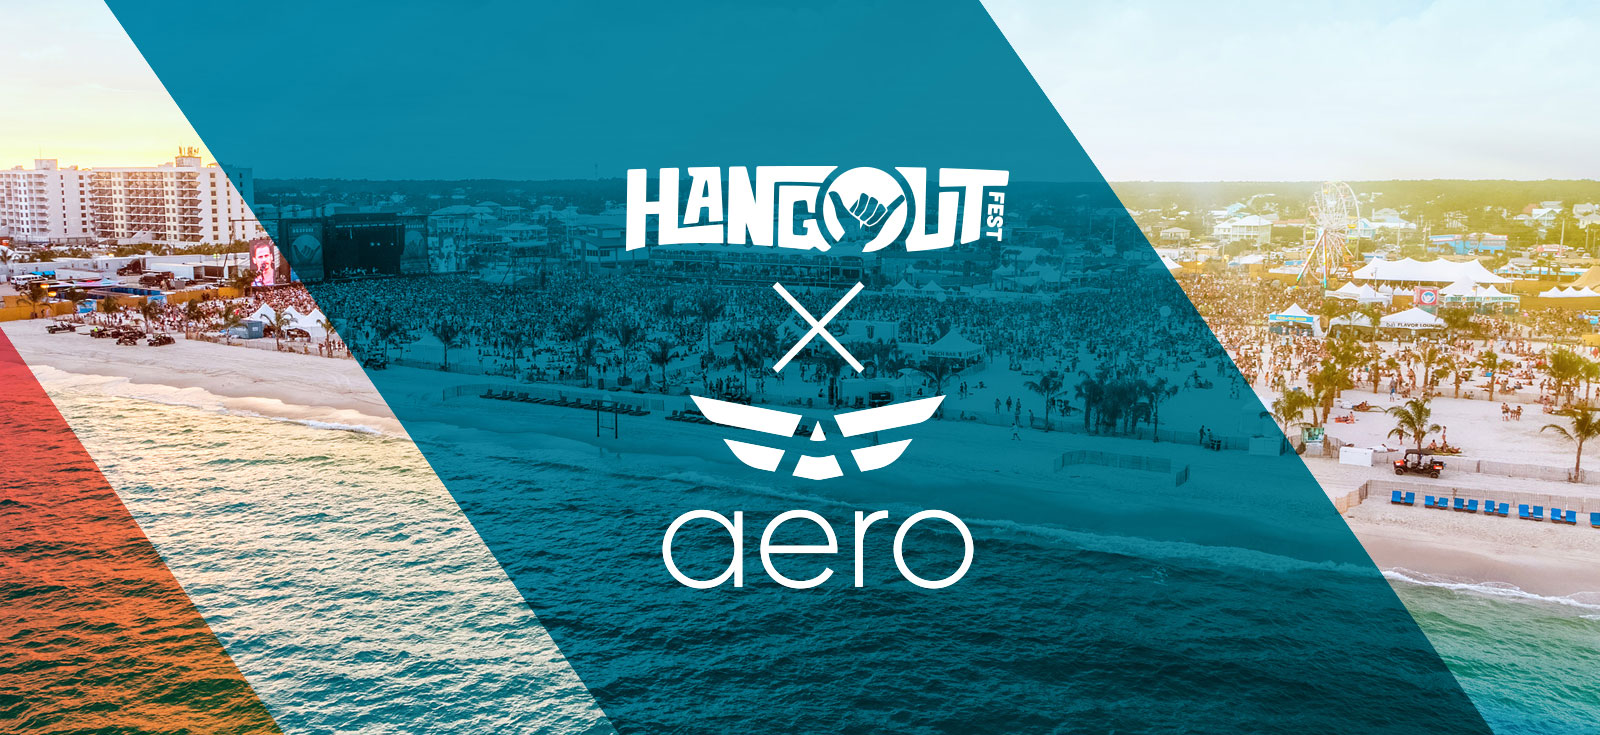 Experience Hangout Fest the Aero way! - Includes the most luxurious and coveted ticket package to Hangout Fest + your own PRIVATE AERO JET!